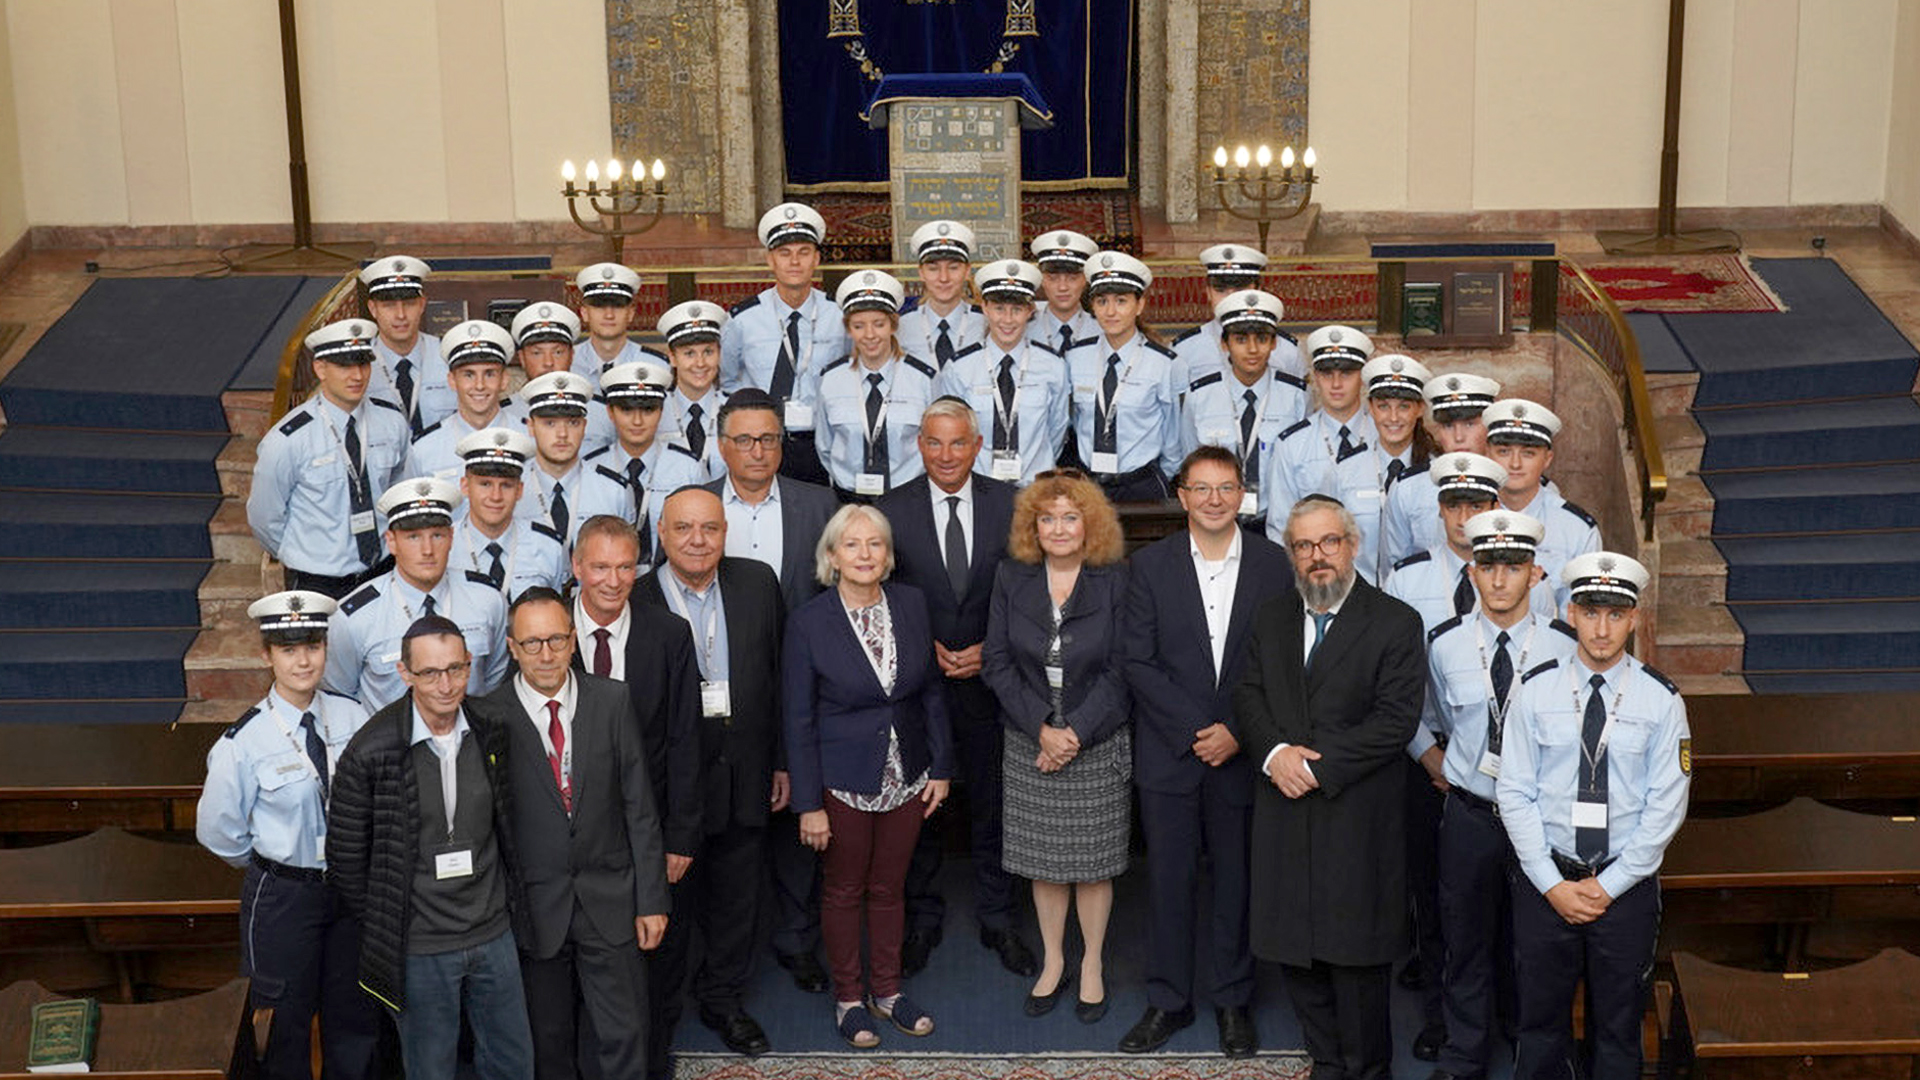 Germany Becomes Third Country In World To Employ Rabbis In Police - Zenger News